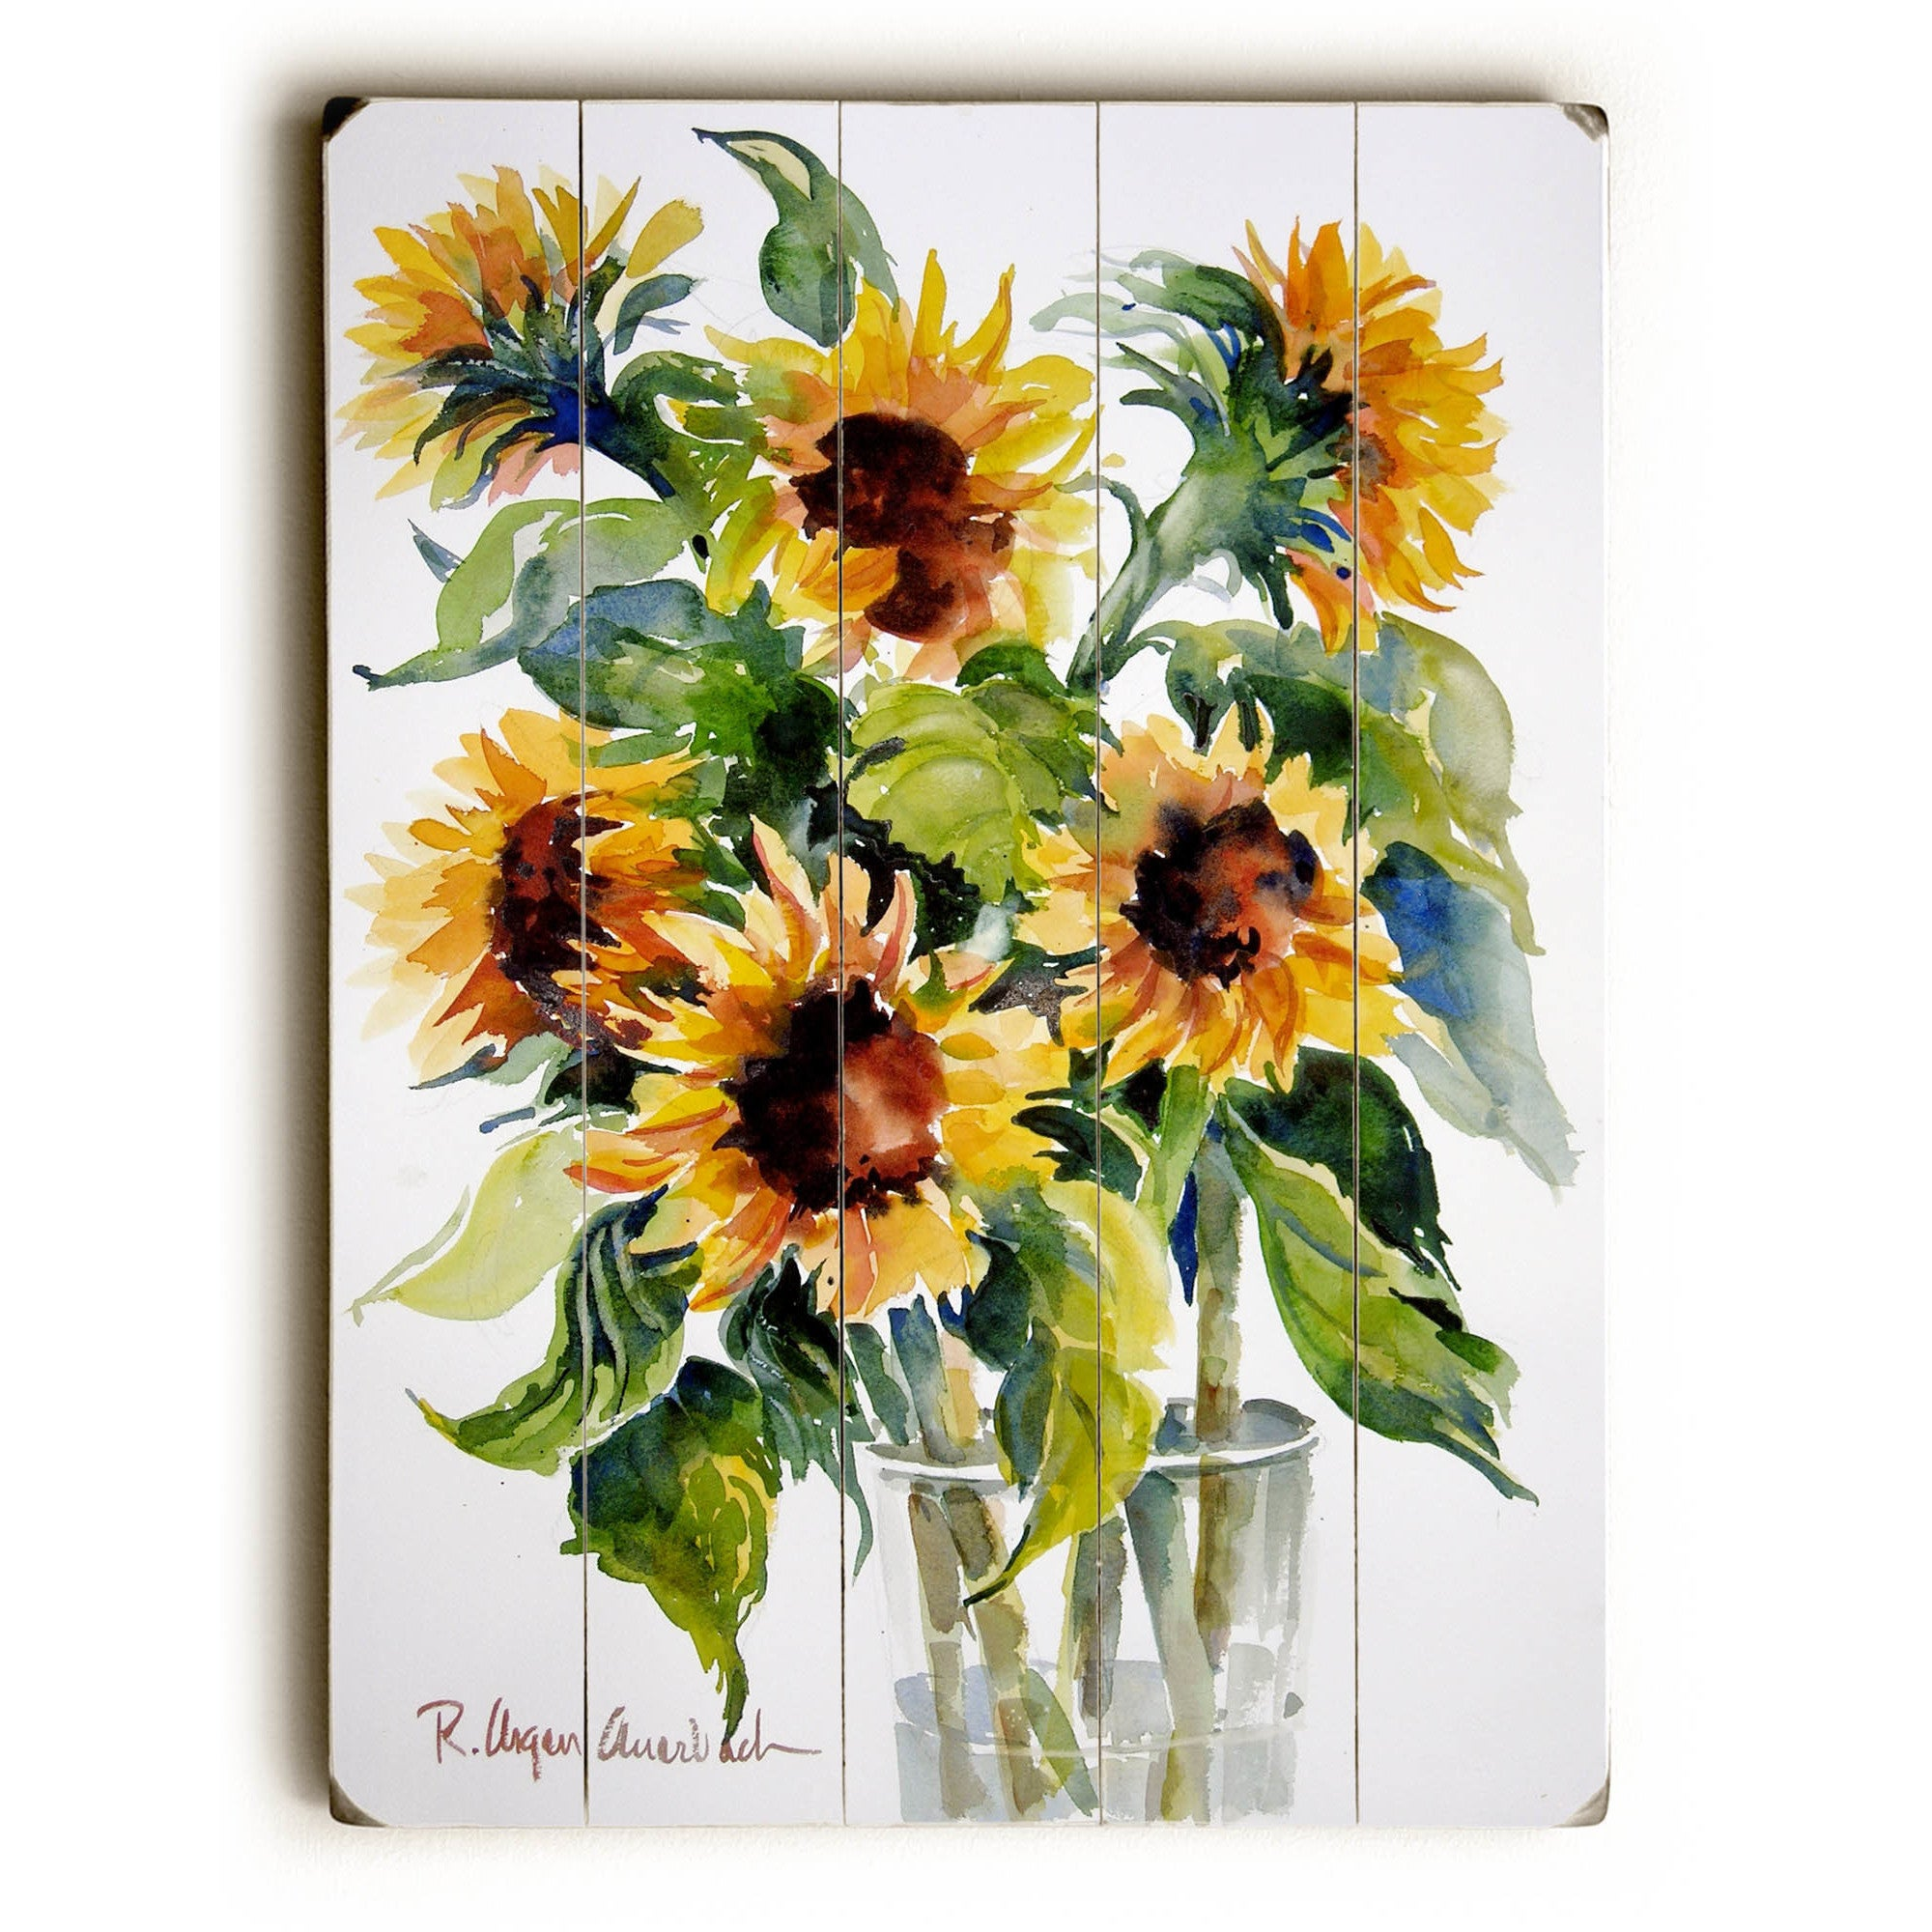 paintings room fruit for painting pictures modern canvas no frame kitchen calligraphy still living sunflower decor life pcs art item in the sunflowers wall